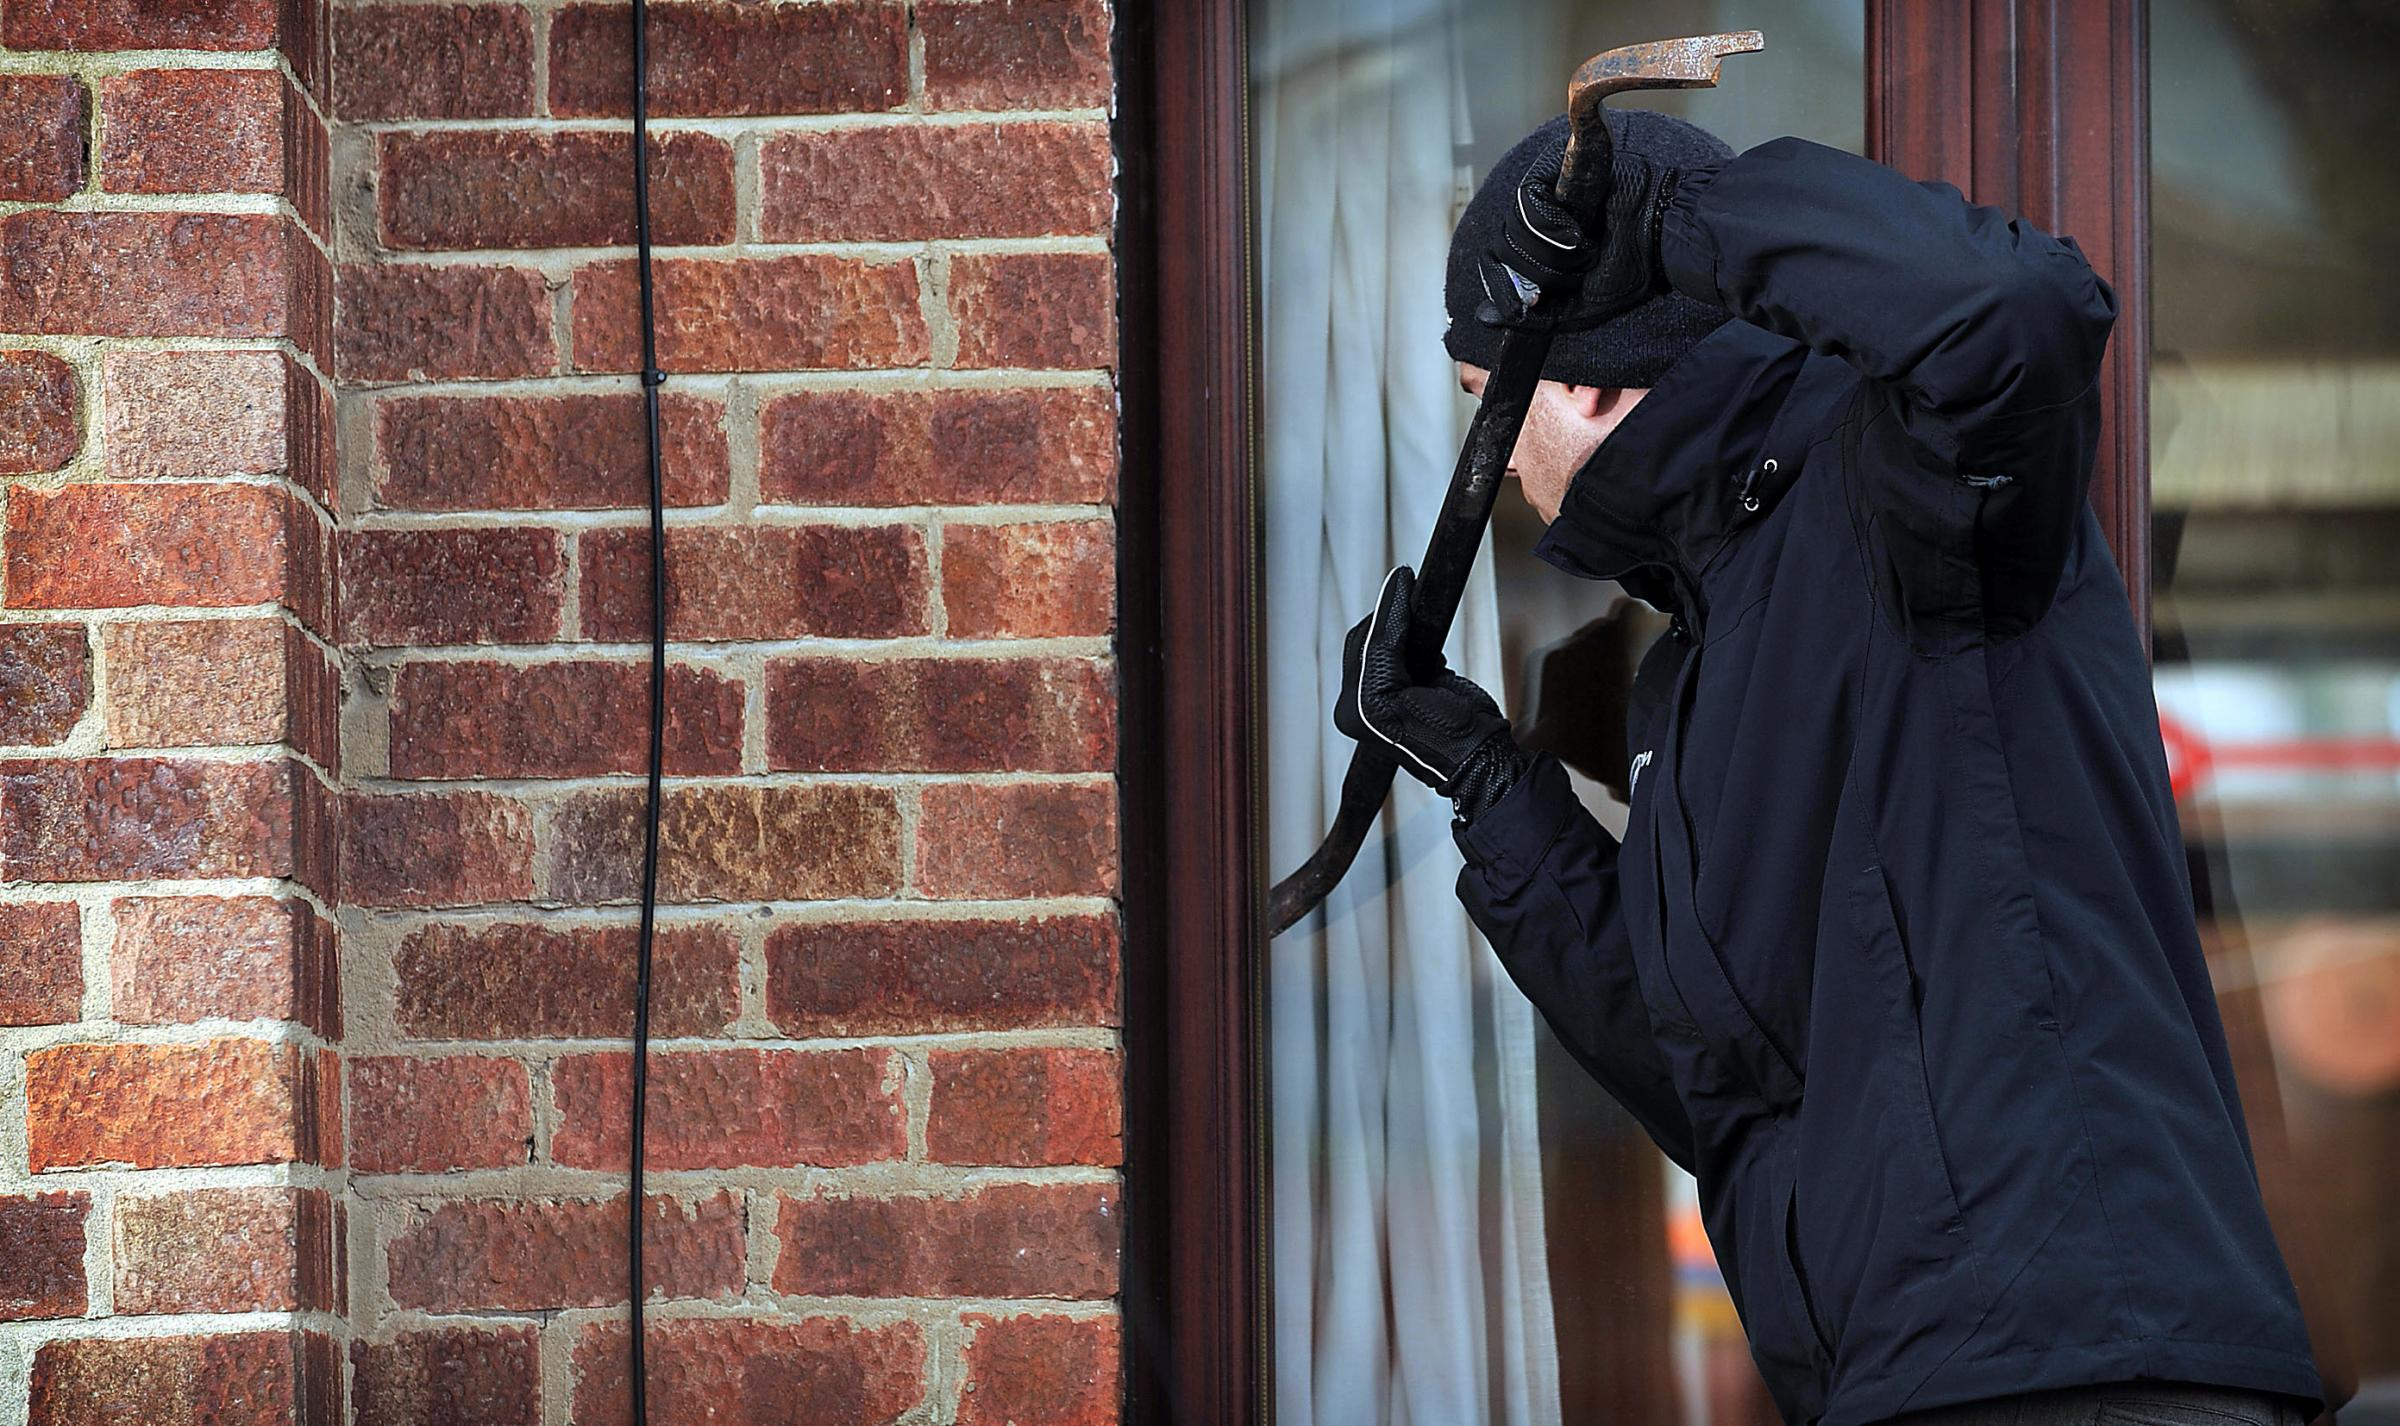 Burglars raid homes in Blackburn and Accrington